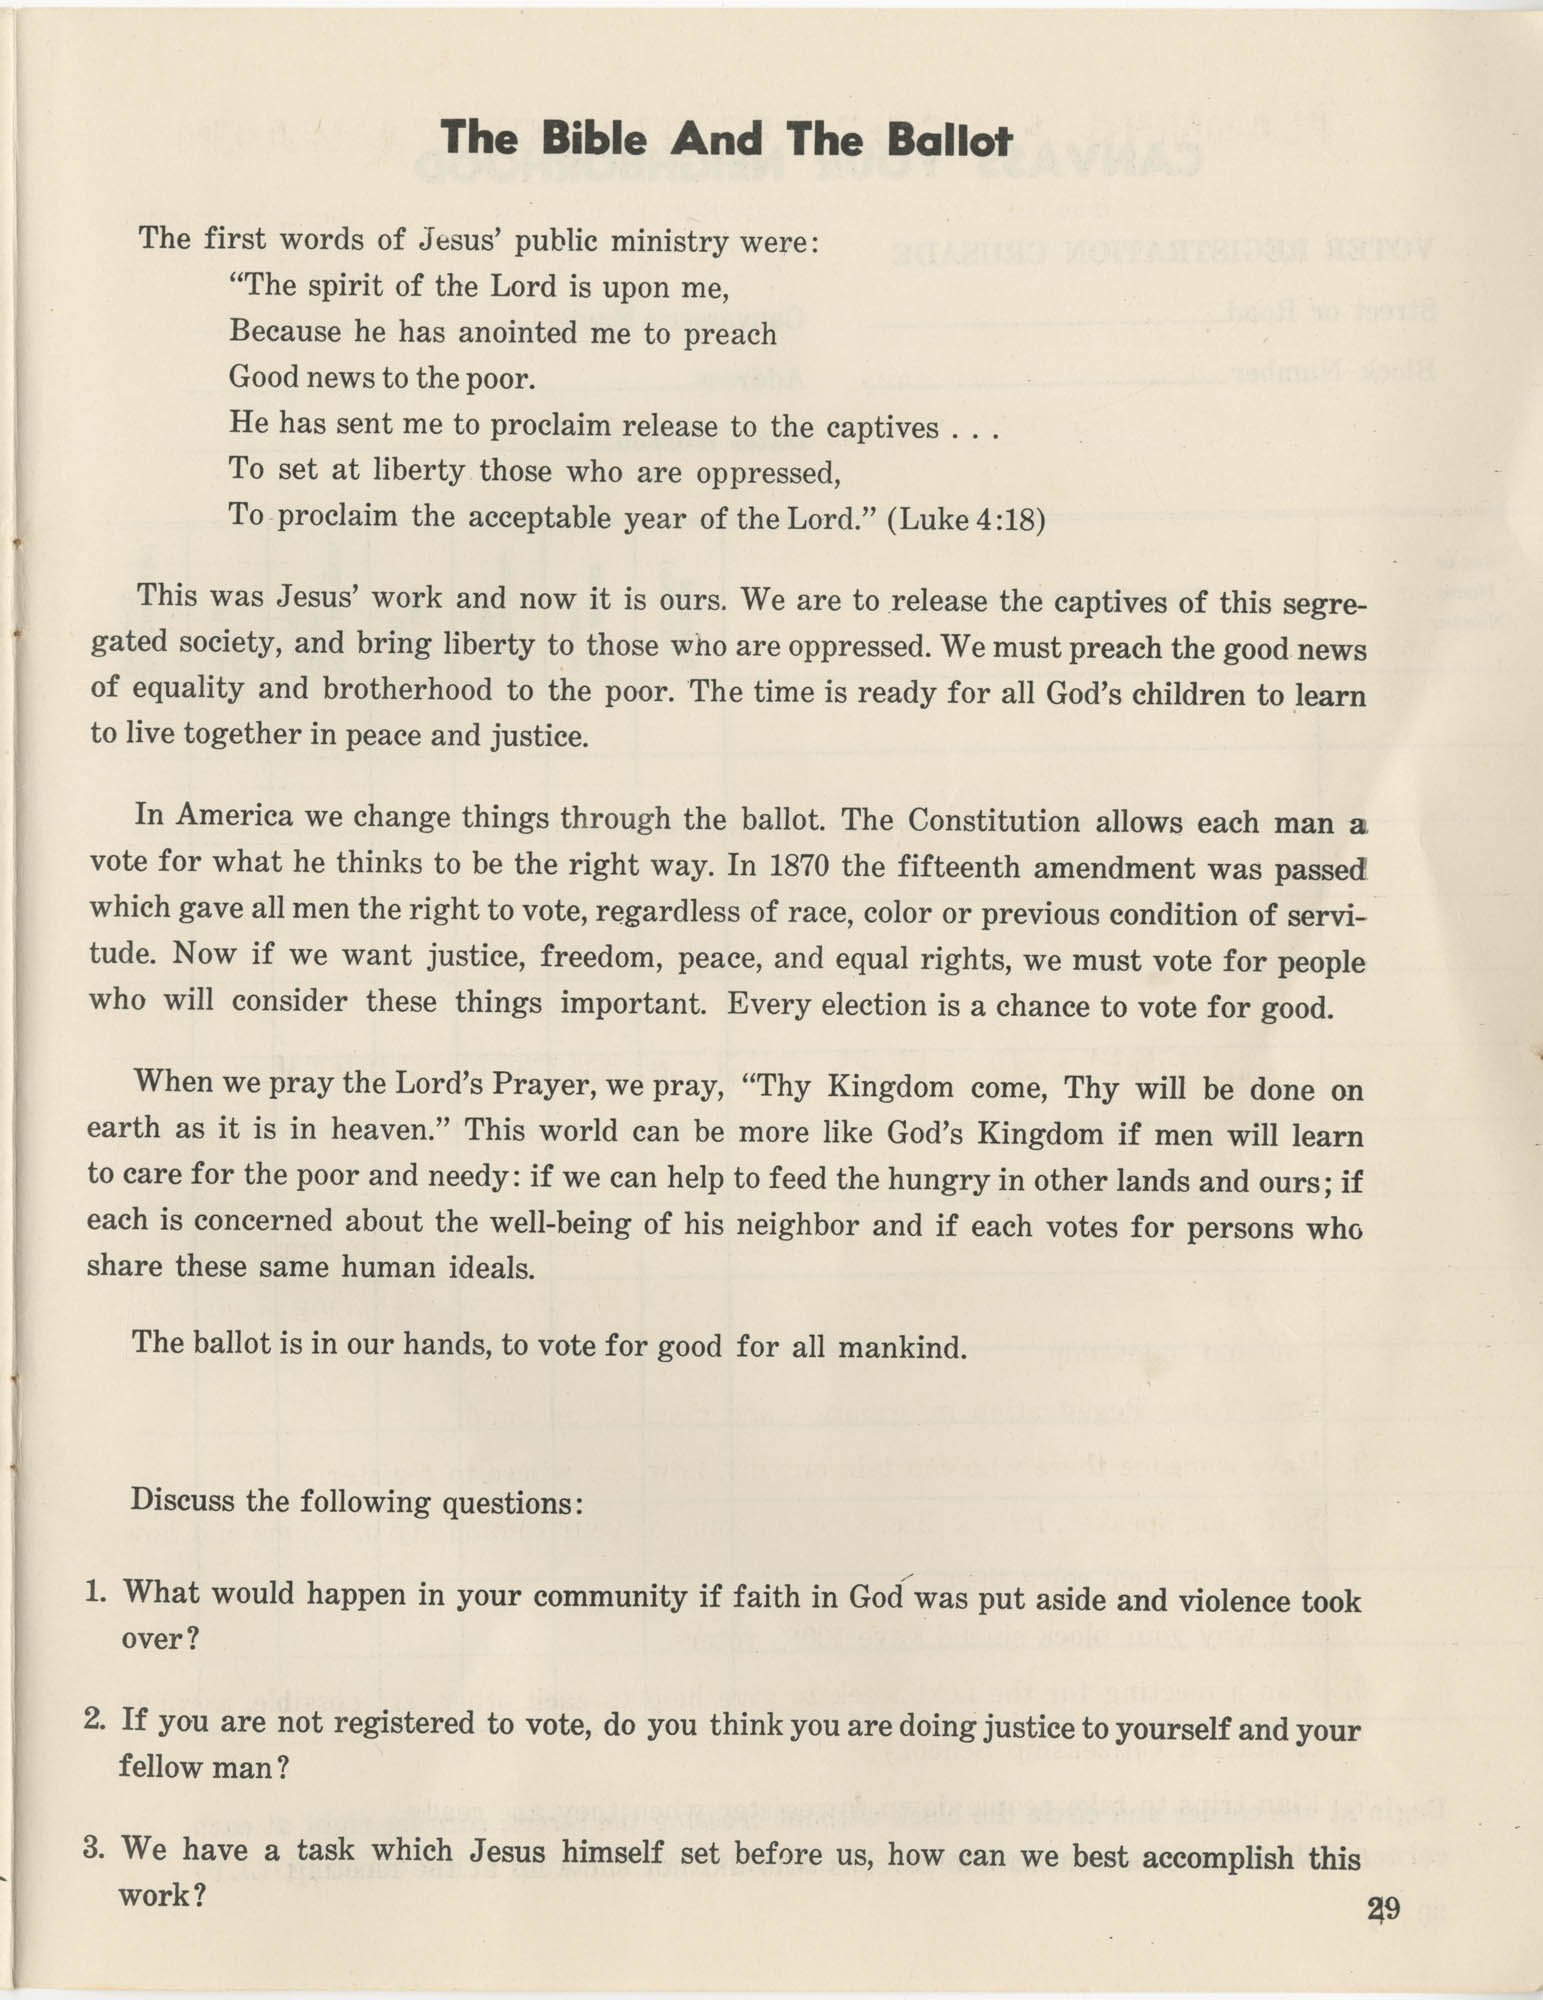 Southern Christian Leadership Conference Citizenship School Workbook, Page 29